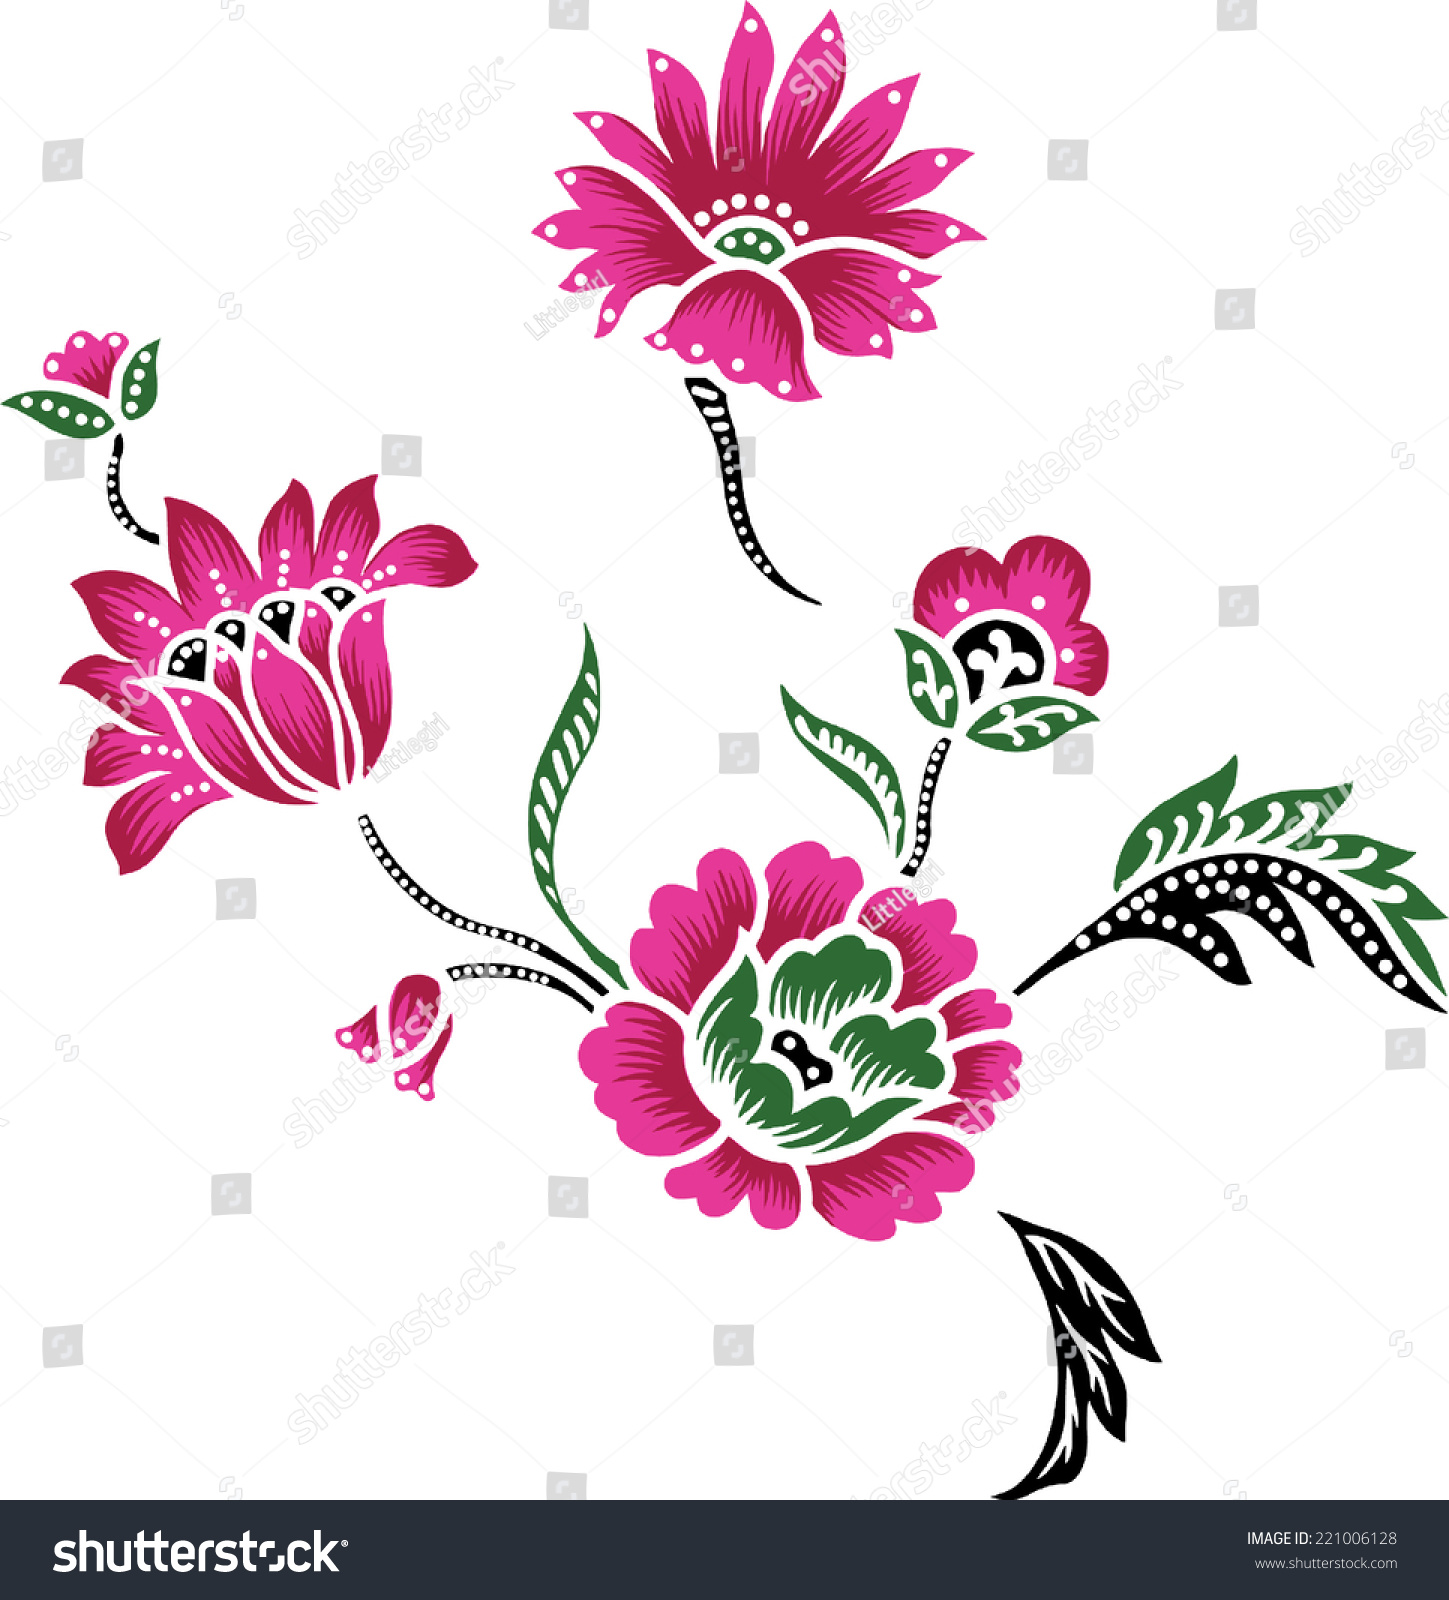 Batikdesigns Pink Flowers Stock Vector 221006128